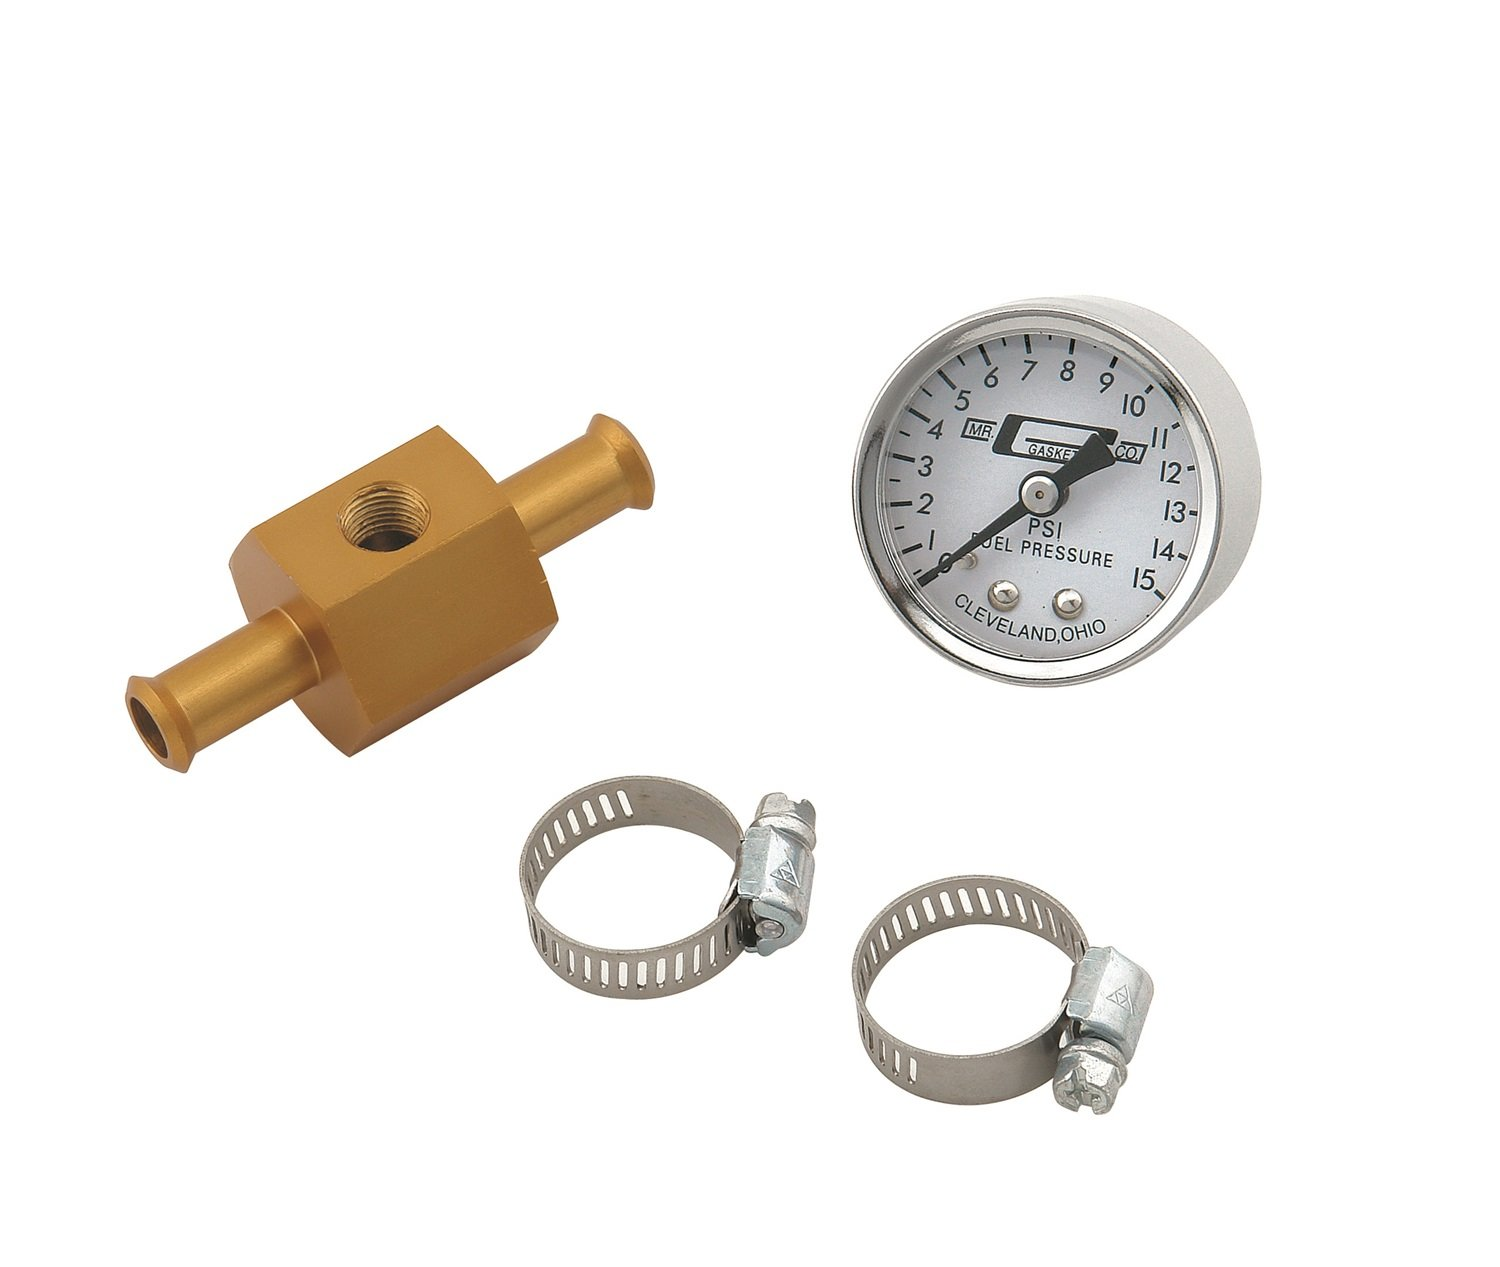 Mr. Gasket Fuel Pressure Gauge 1560